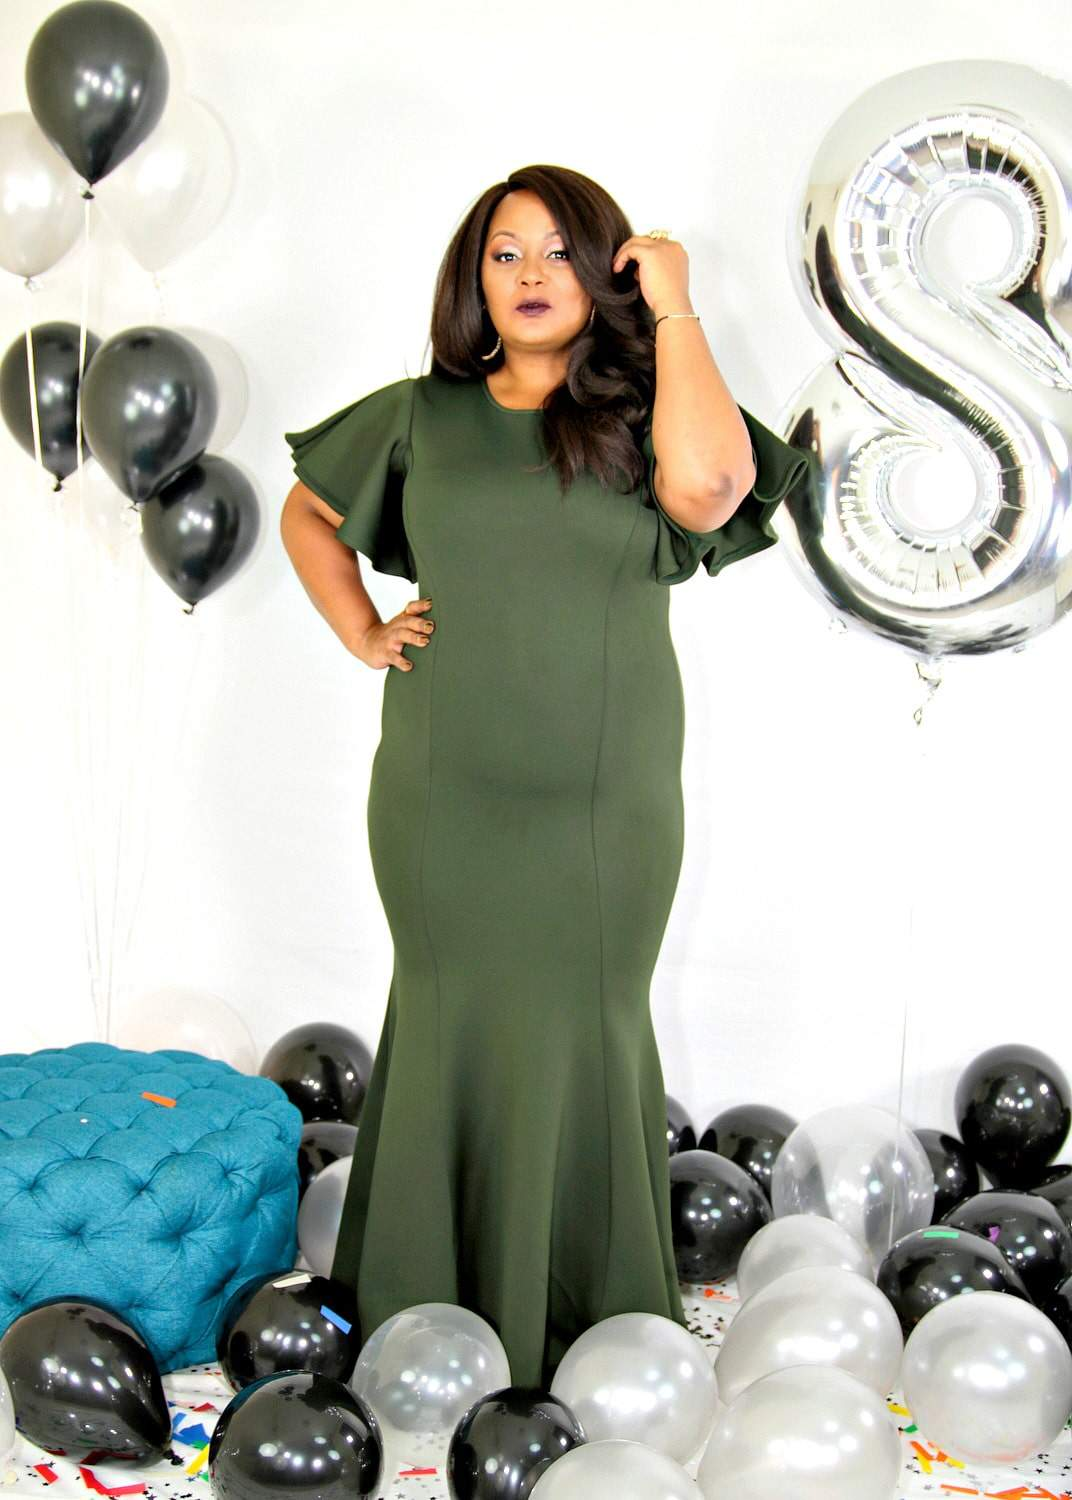 The Curvy Fashionista turns 8 with Chic and Curvy